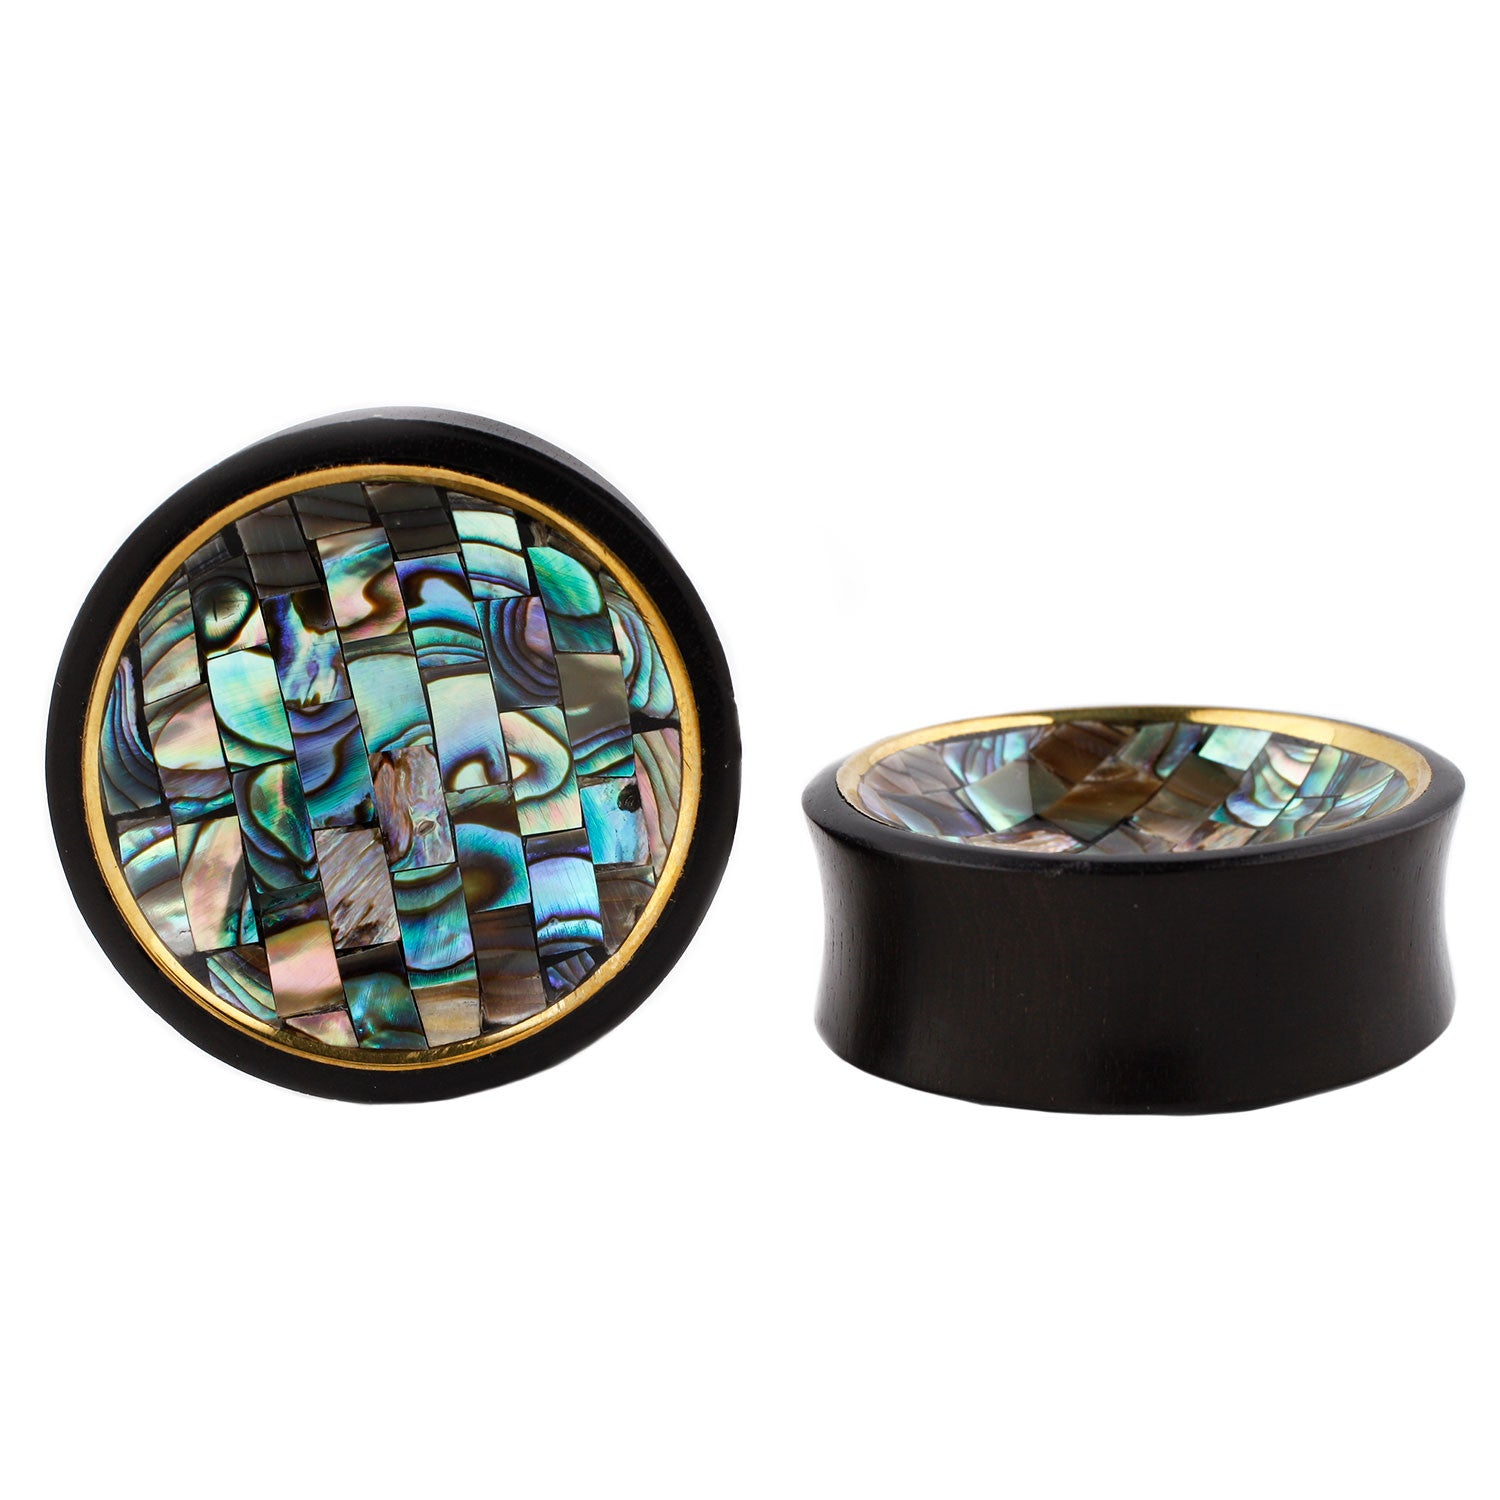 Abalone Brick Inlay with Brass Rim Plug